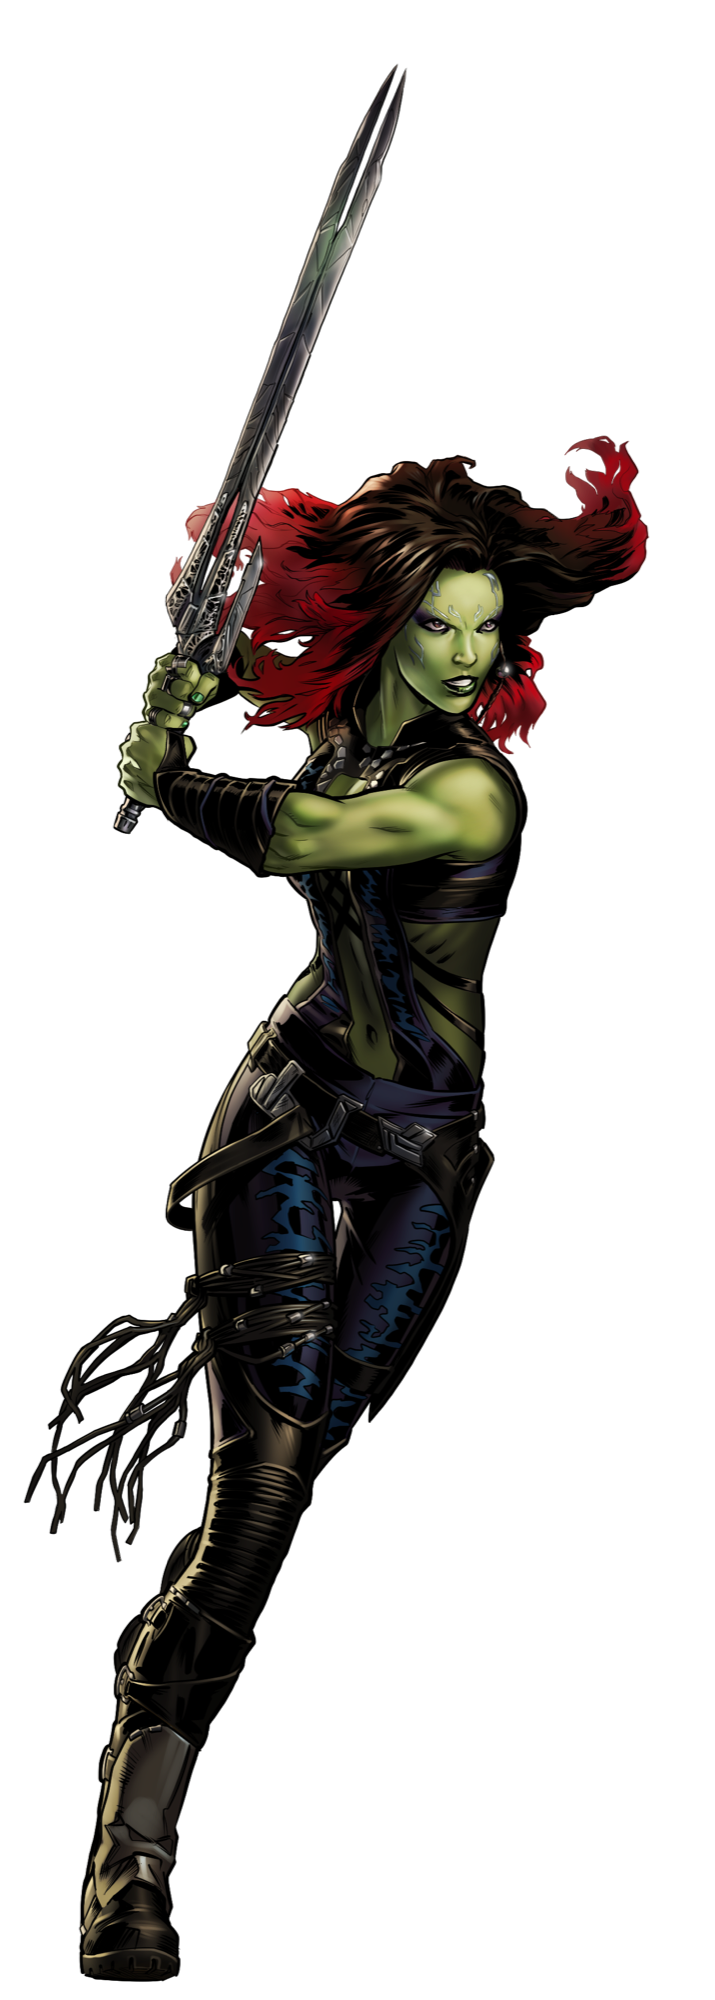 Gamora drawing tattoo. In avengers alliance ilustrations